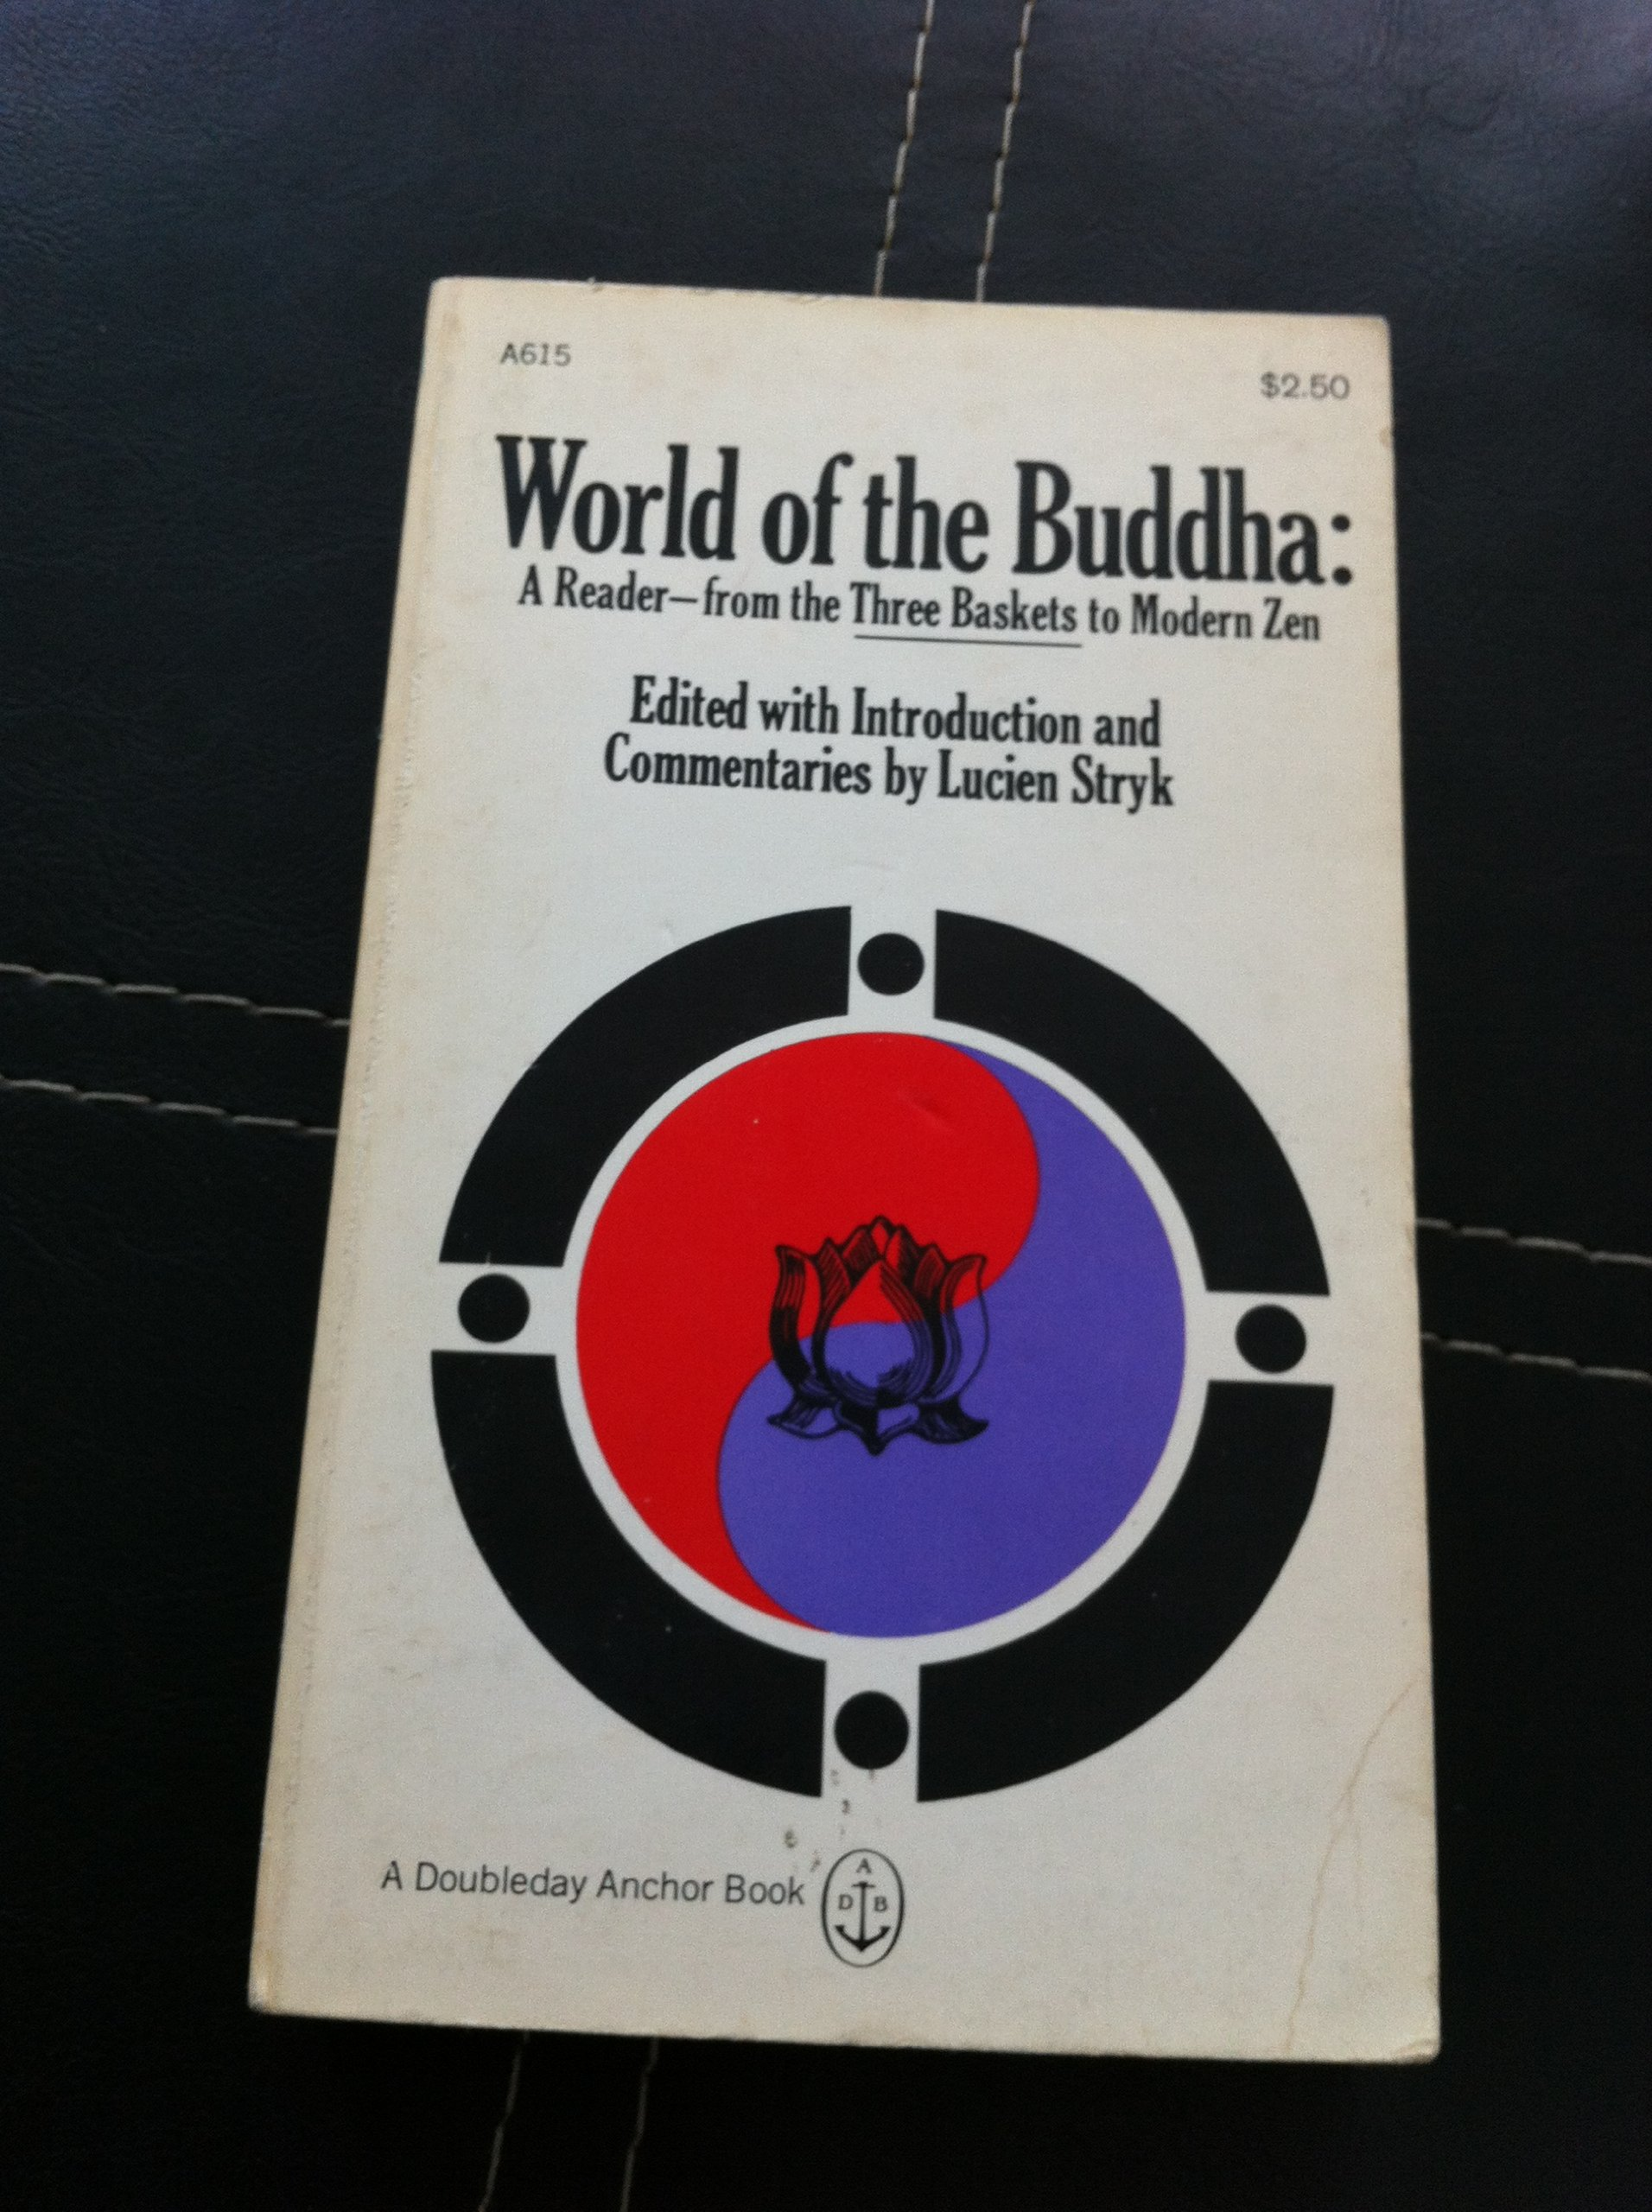 World of the Buddha: Reader from the Three Baskets to Modern Zen